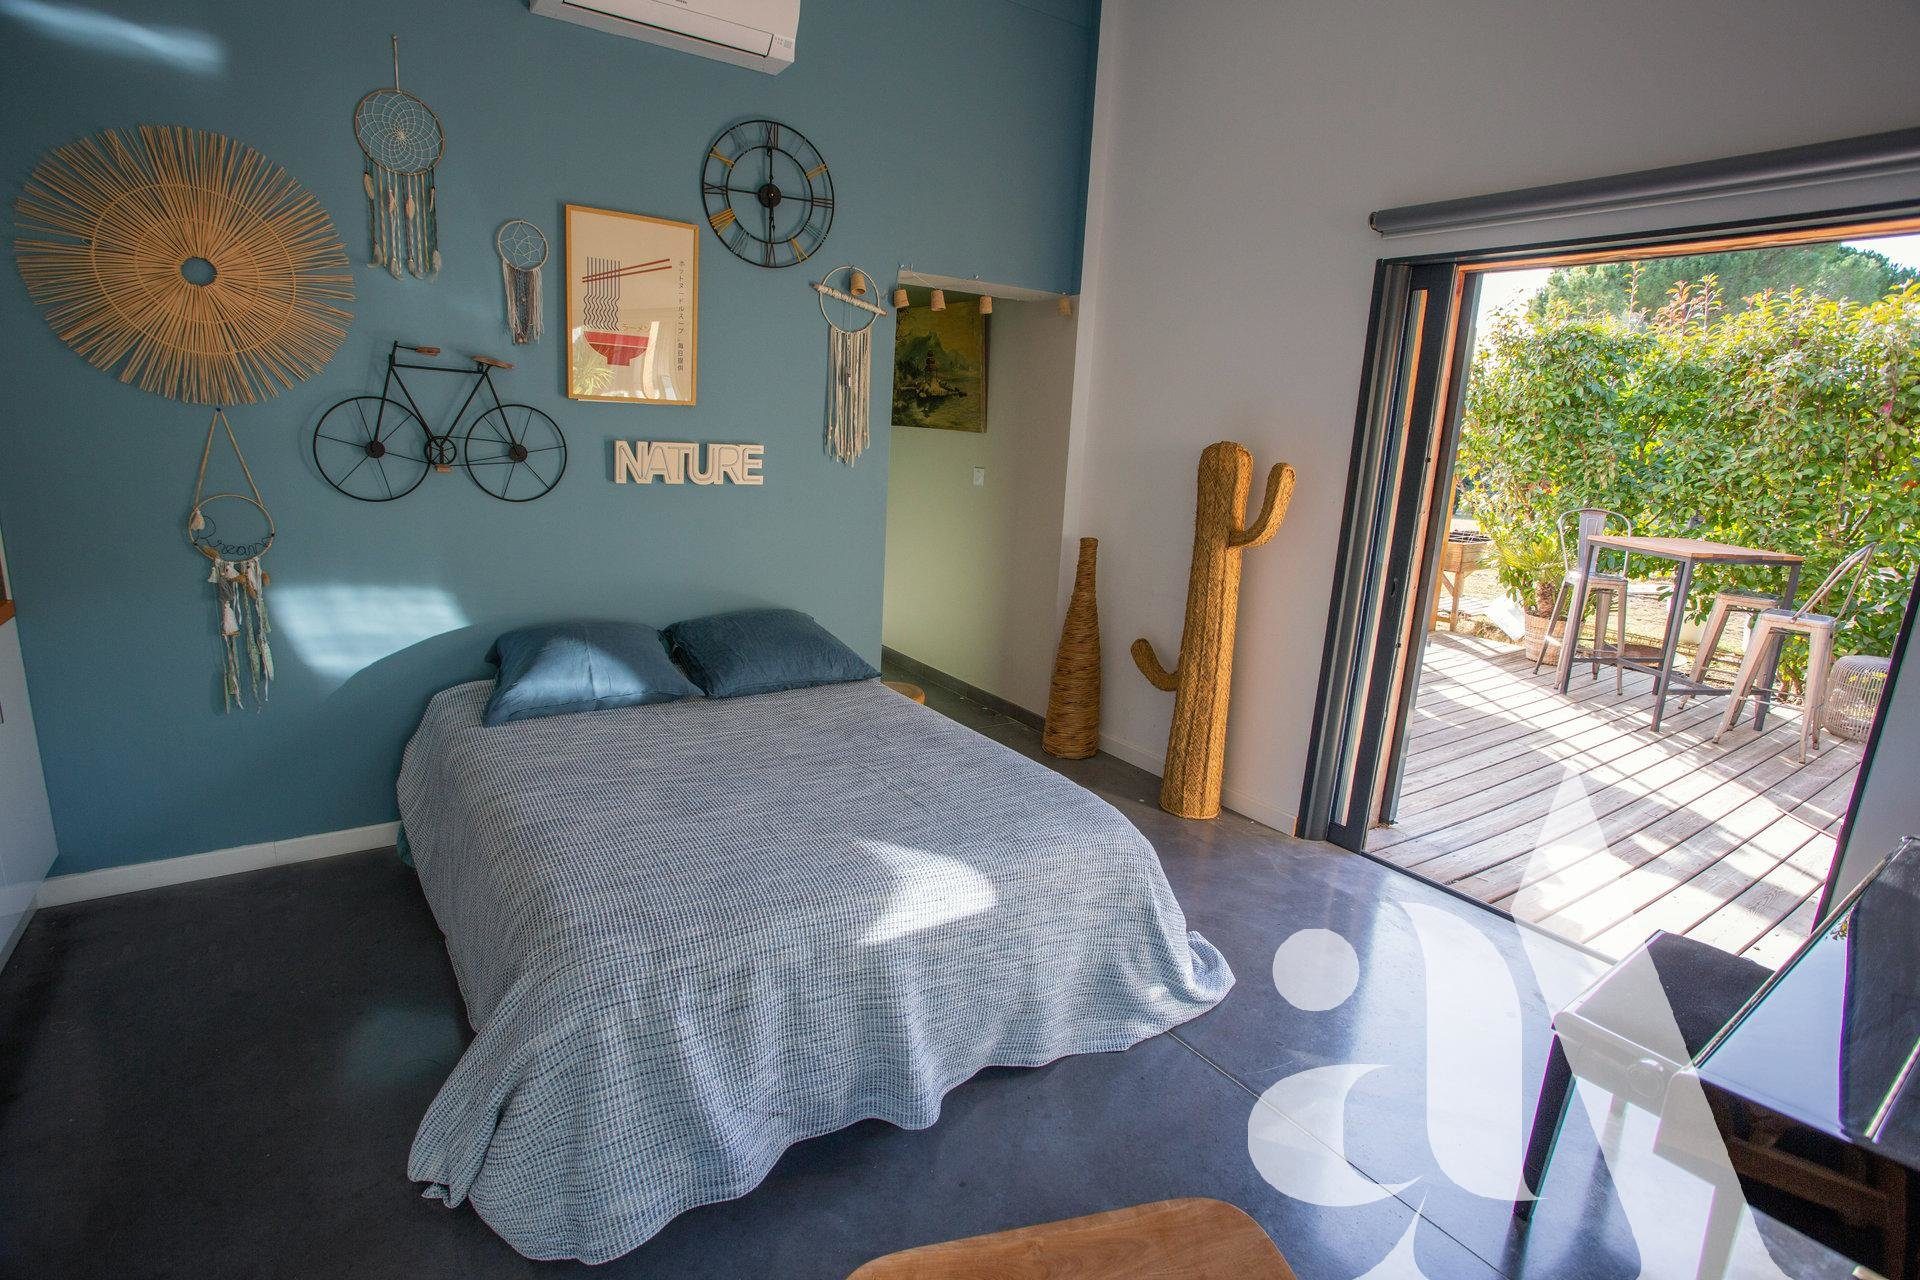 LE LOFT - LE PARADOU - ALPILLES - 4 bedrooms - 8 people